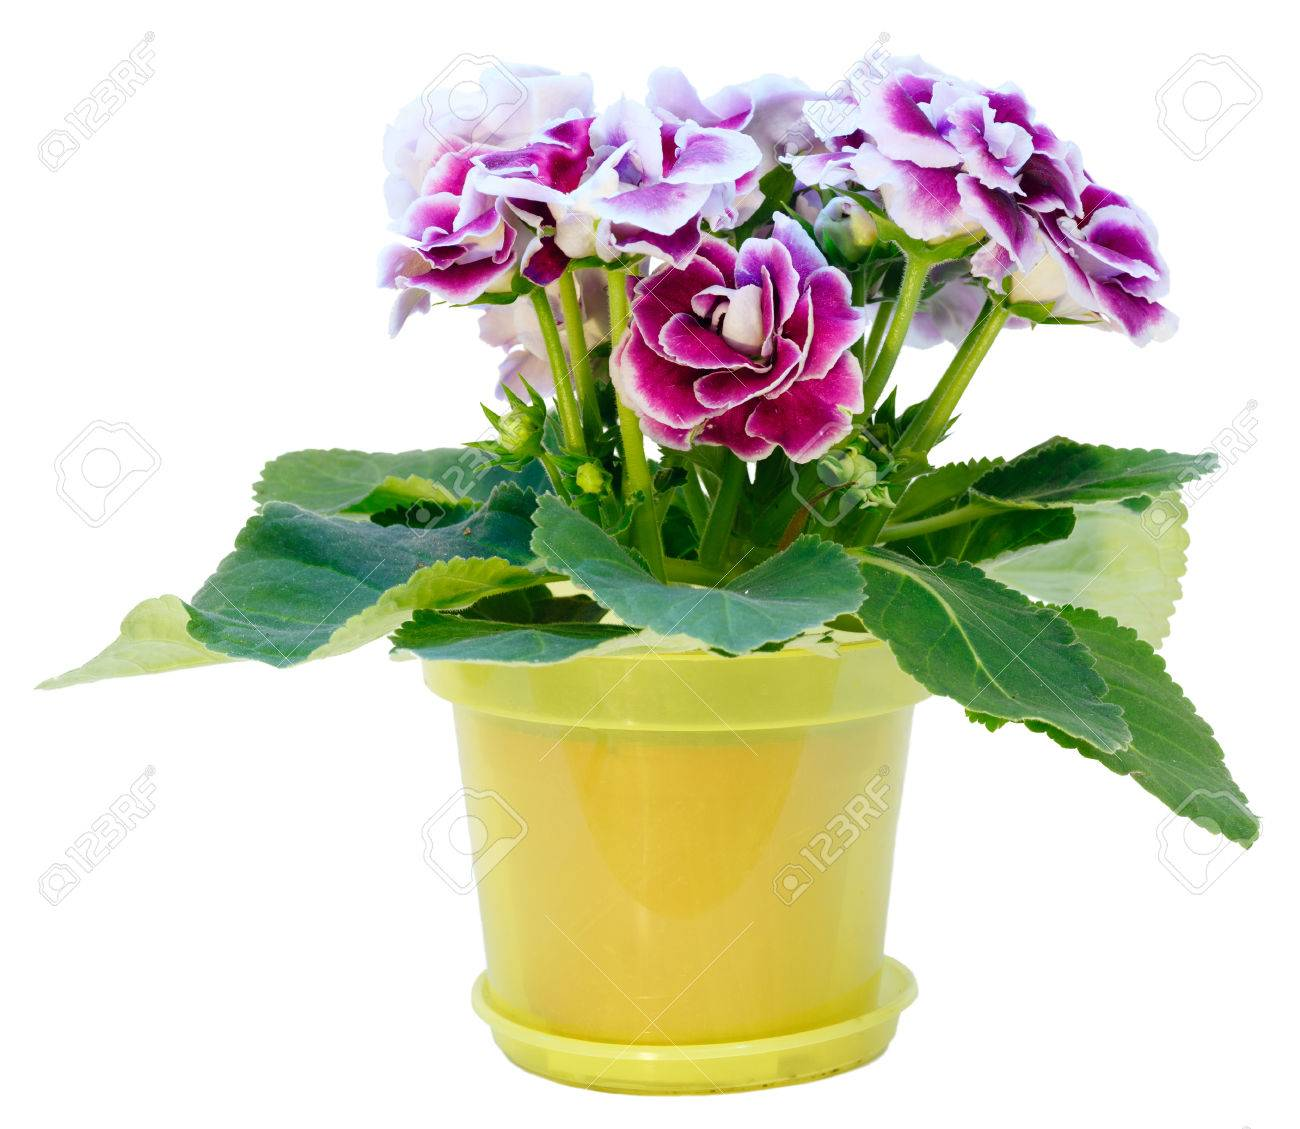 Gloxinia Plant With Violet White Flowers In Flowerpot Isolated